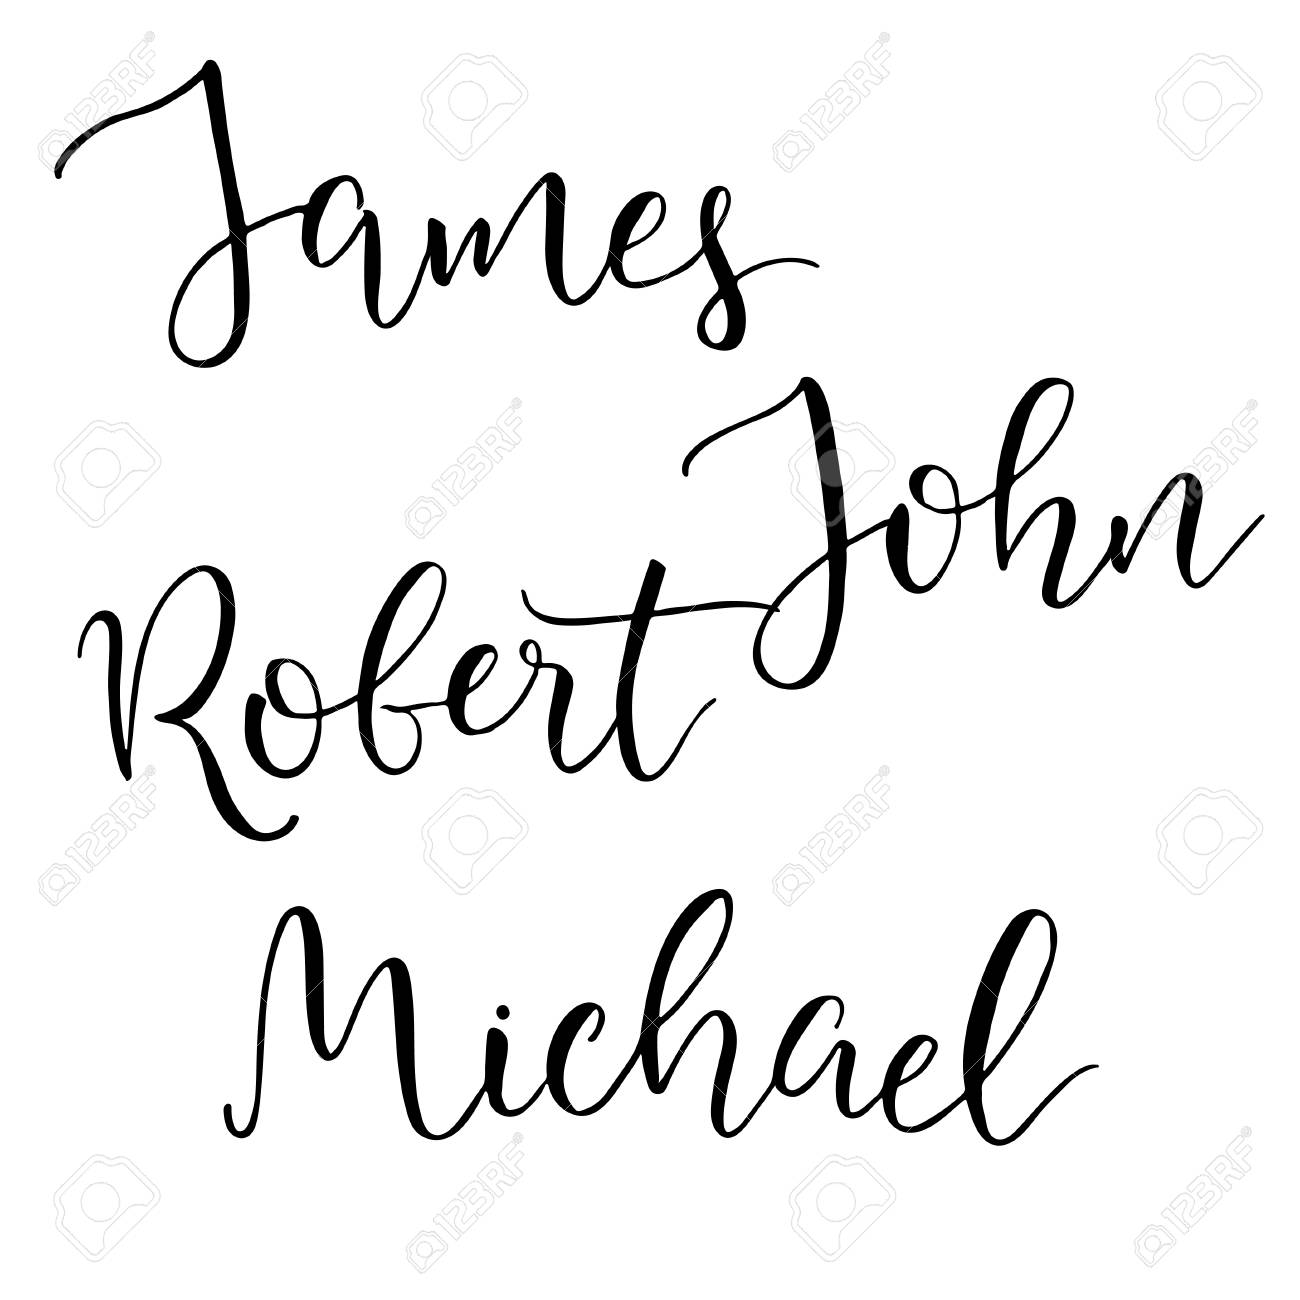 Set Of Four Common American Male Names Modern Calligraphic Style Isolated Objects Stock